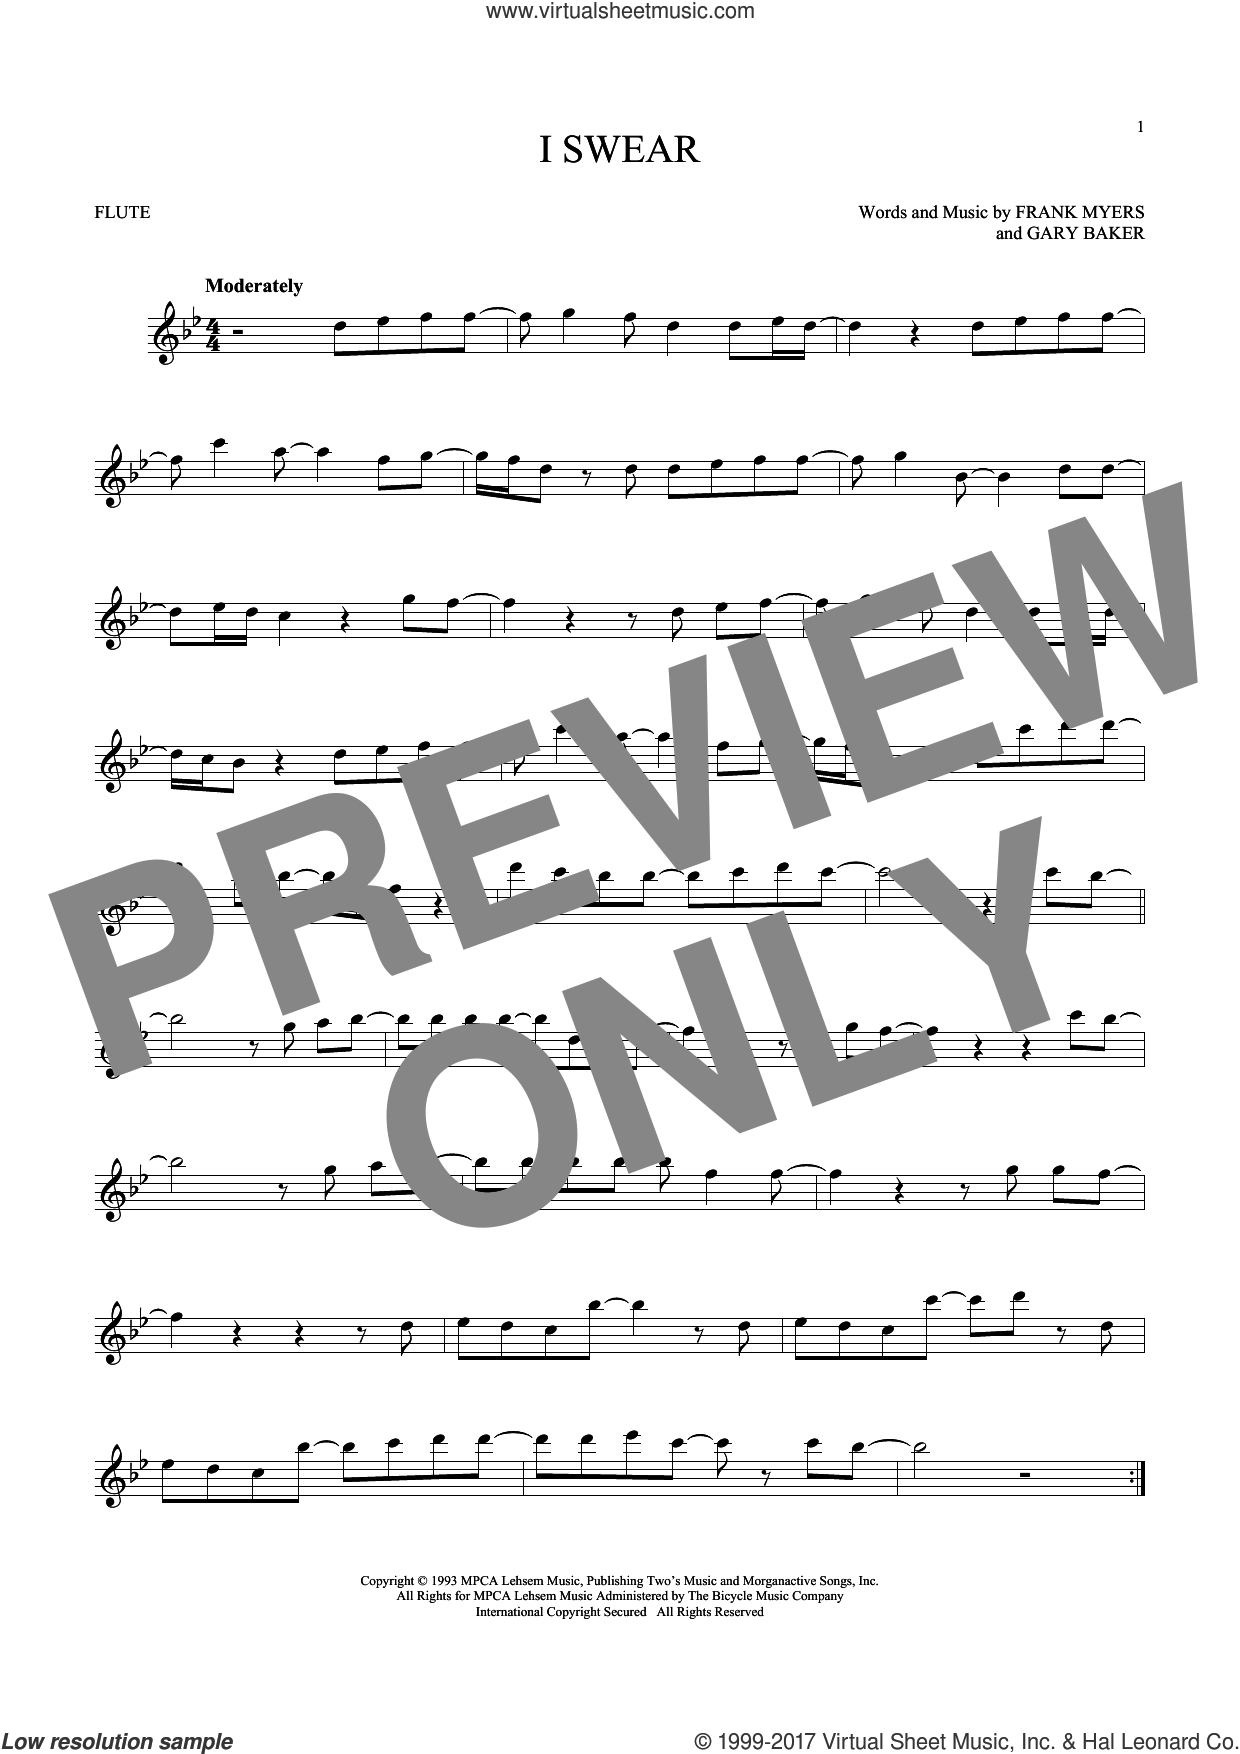 I Swear sheet music for flute solo by All-4-One, Frank Myers and Gary Baker, intermediate skill level